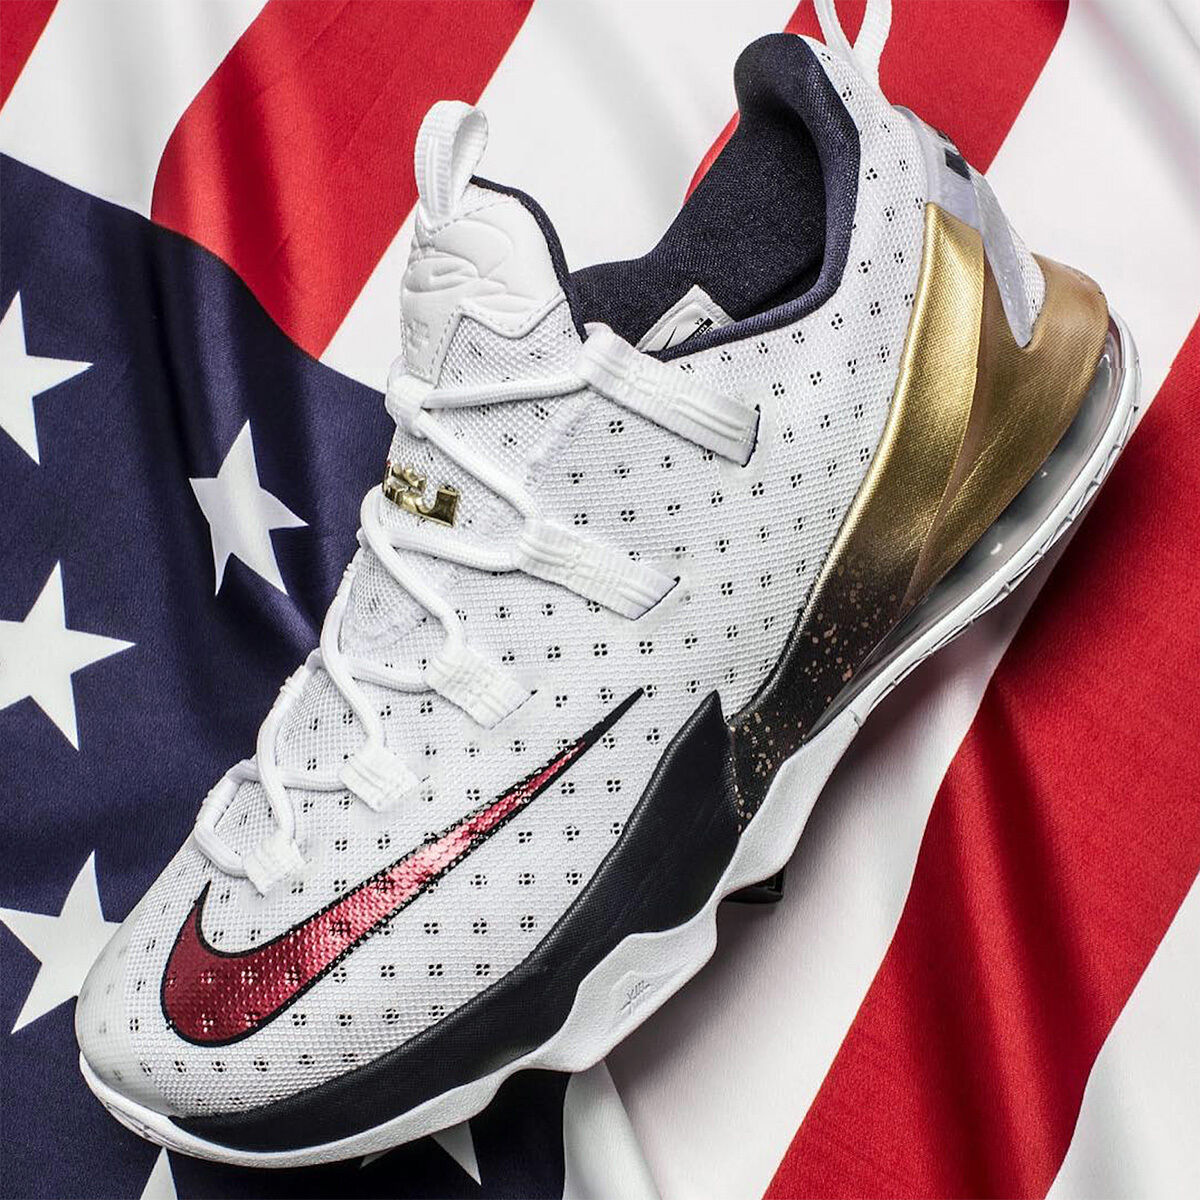 Nike LeBron 13 XIII Low USA Gold Medal Size 8. 831925-164 Kyrie Cavs MVP